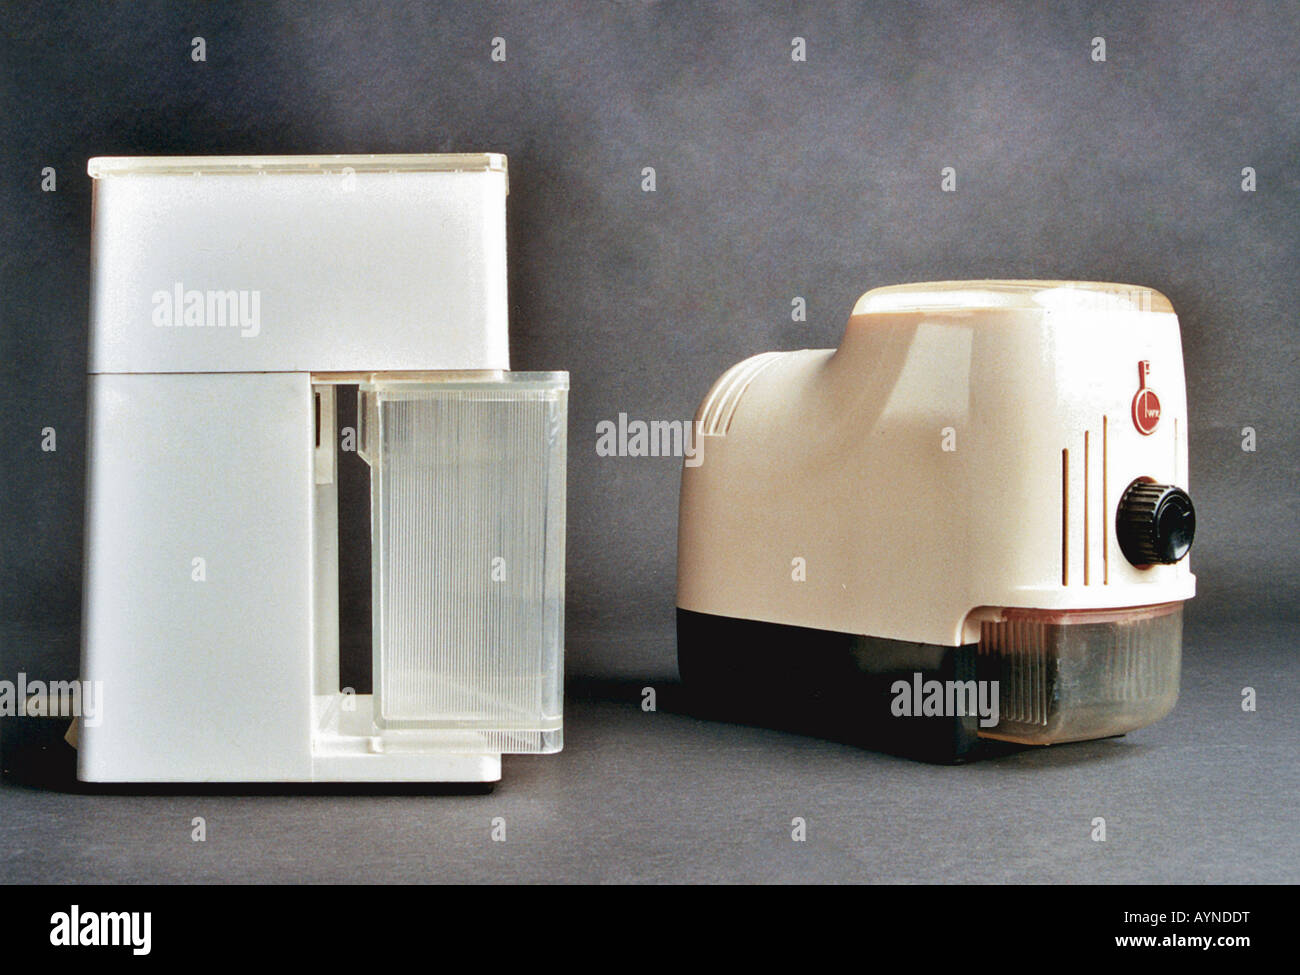 Gdr Product Stock Photos Gdr Product Stock Images Page 5 Alamy